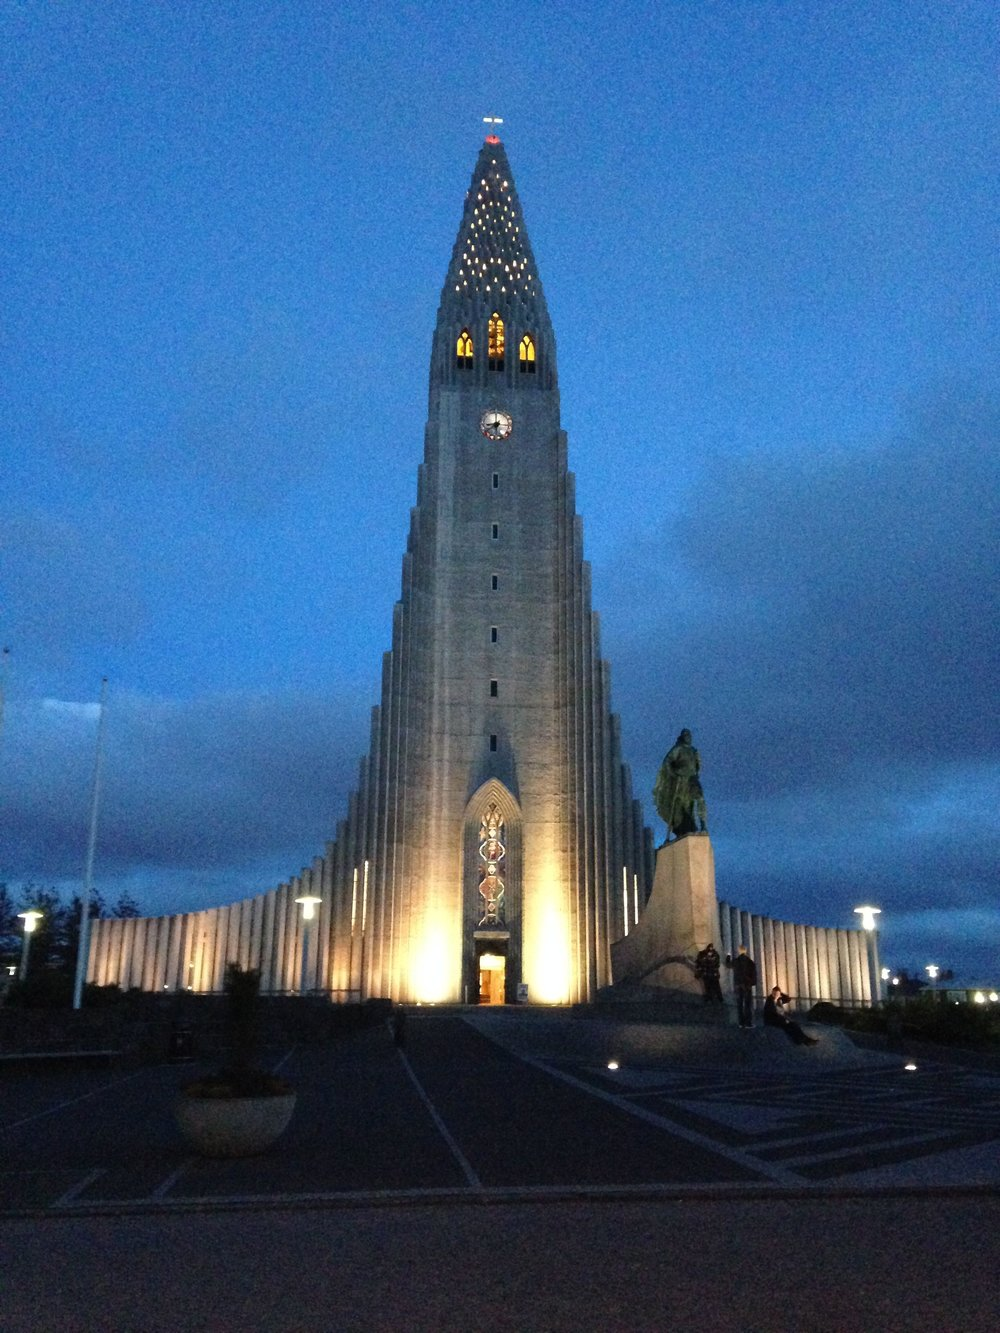 Hallgrímskirkja at night. Located at the top of a hill in Reykjavik's historic district.